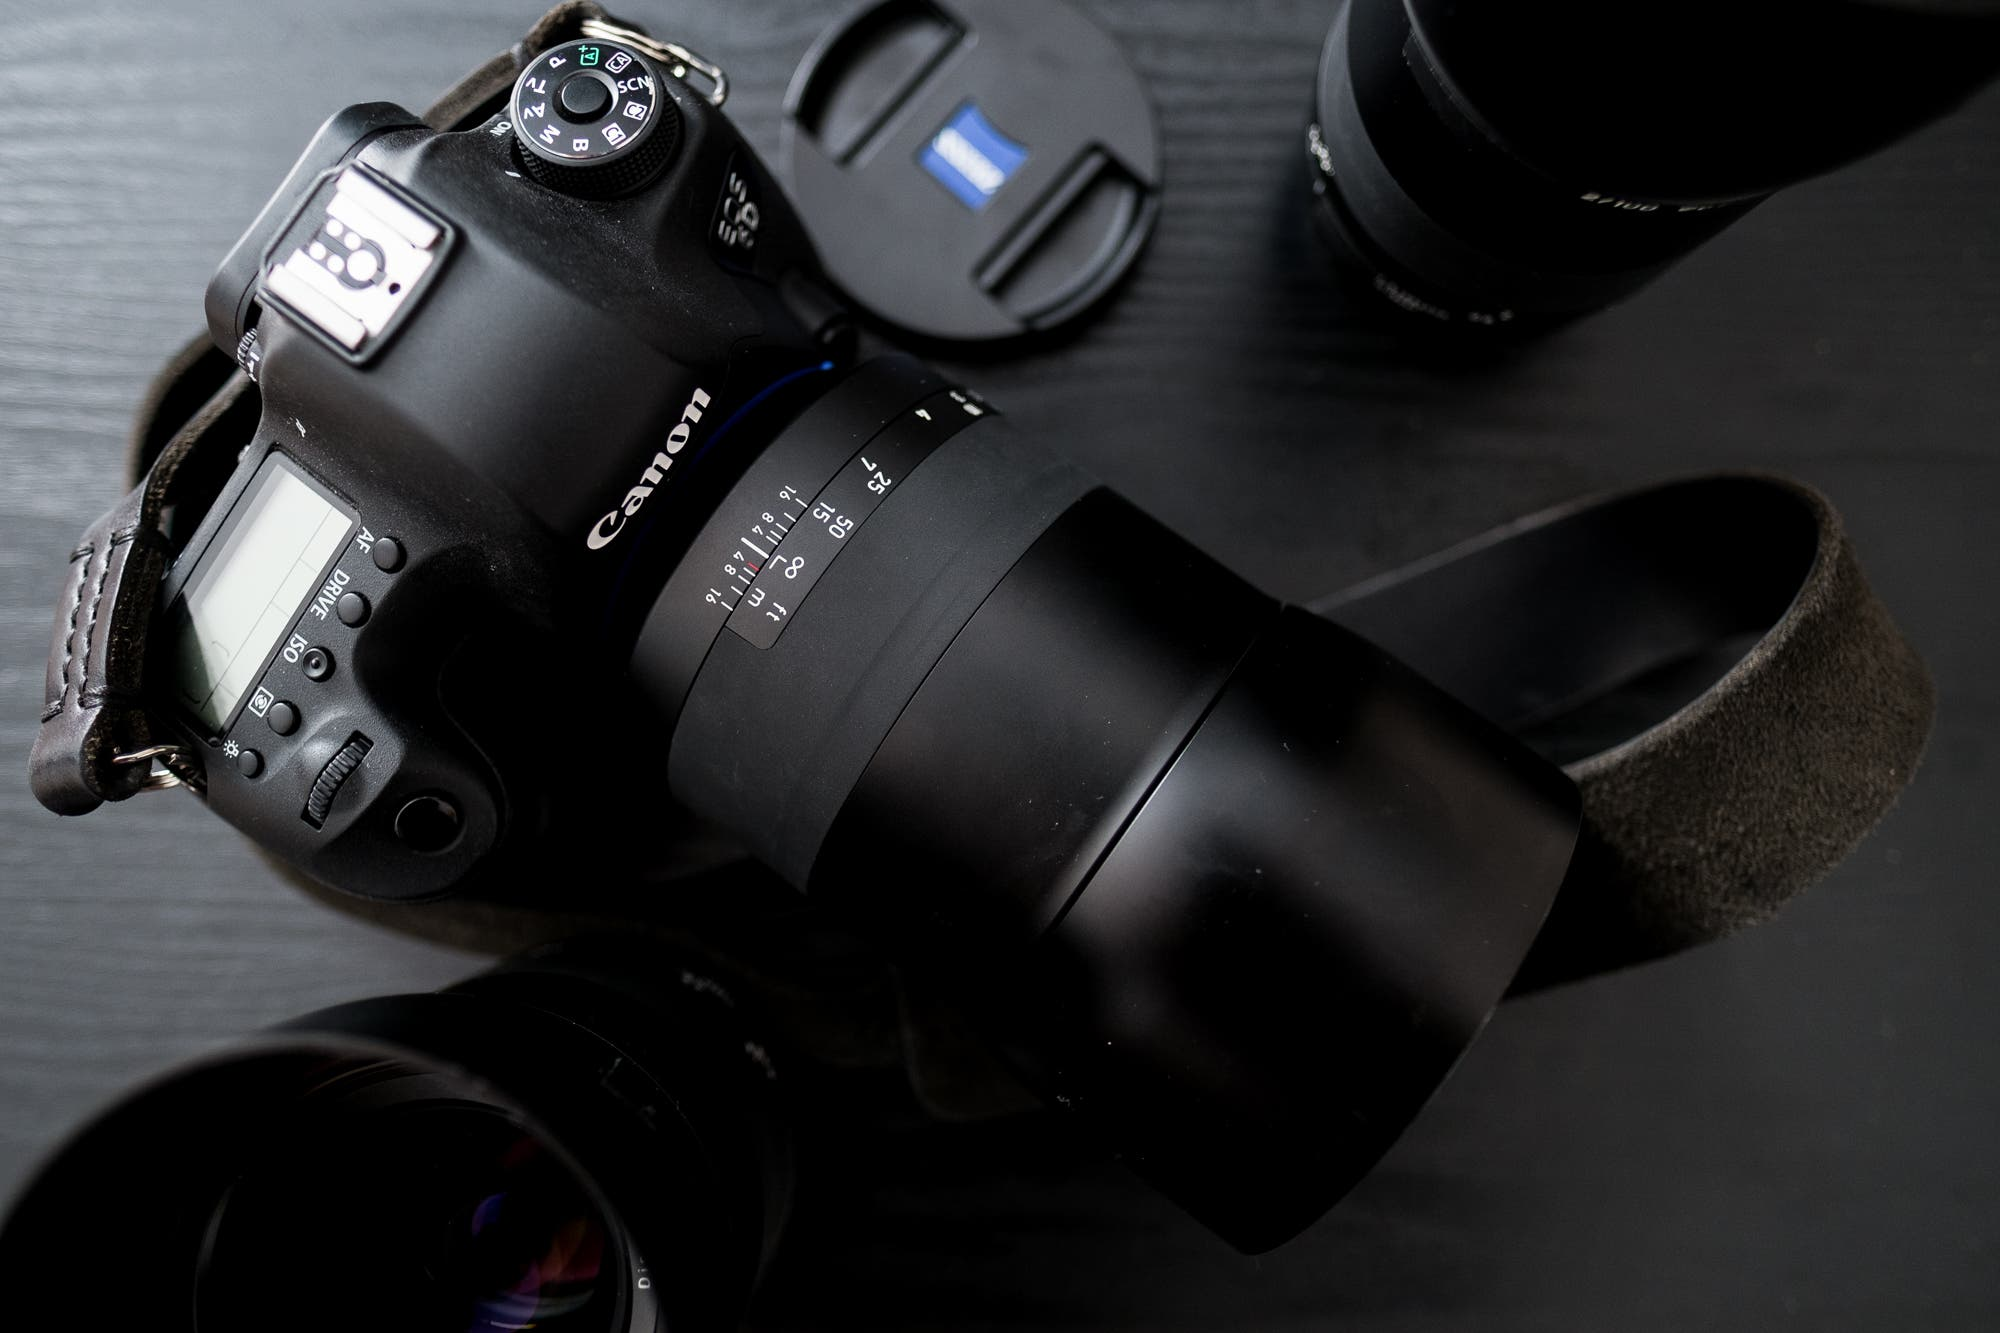 The Best 10 Performing Lenses According to DXOMark (August 2020)